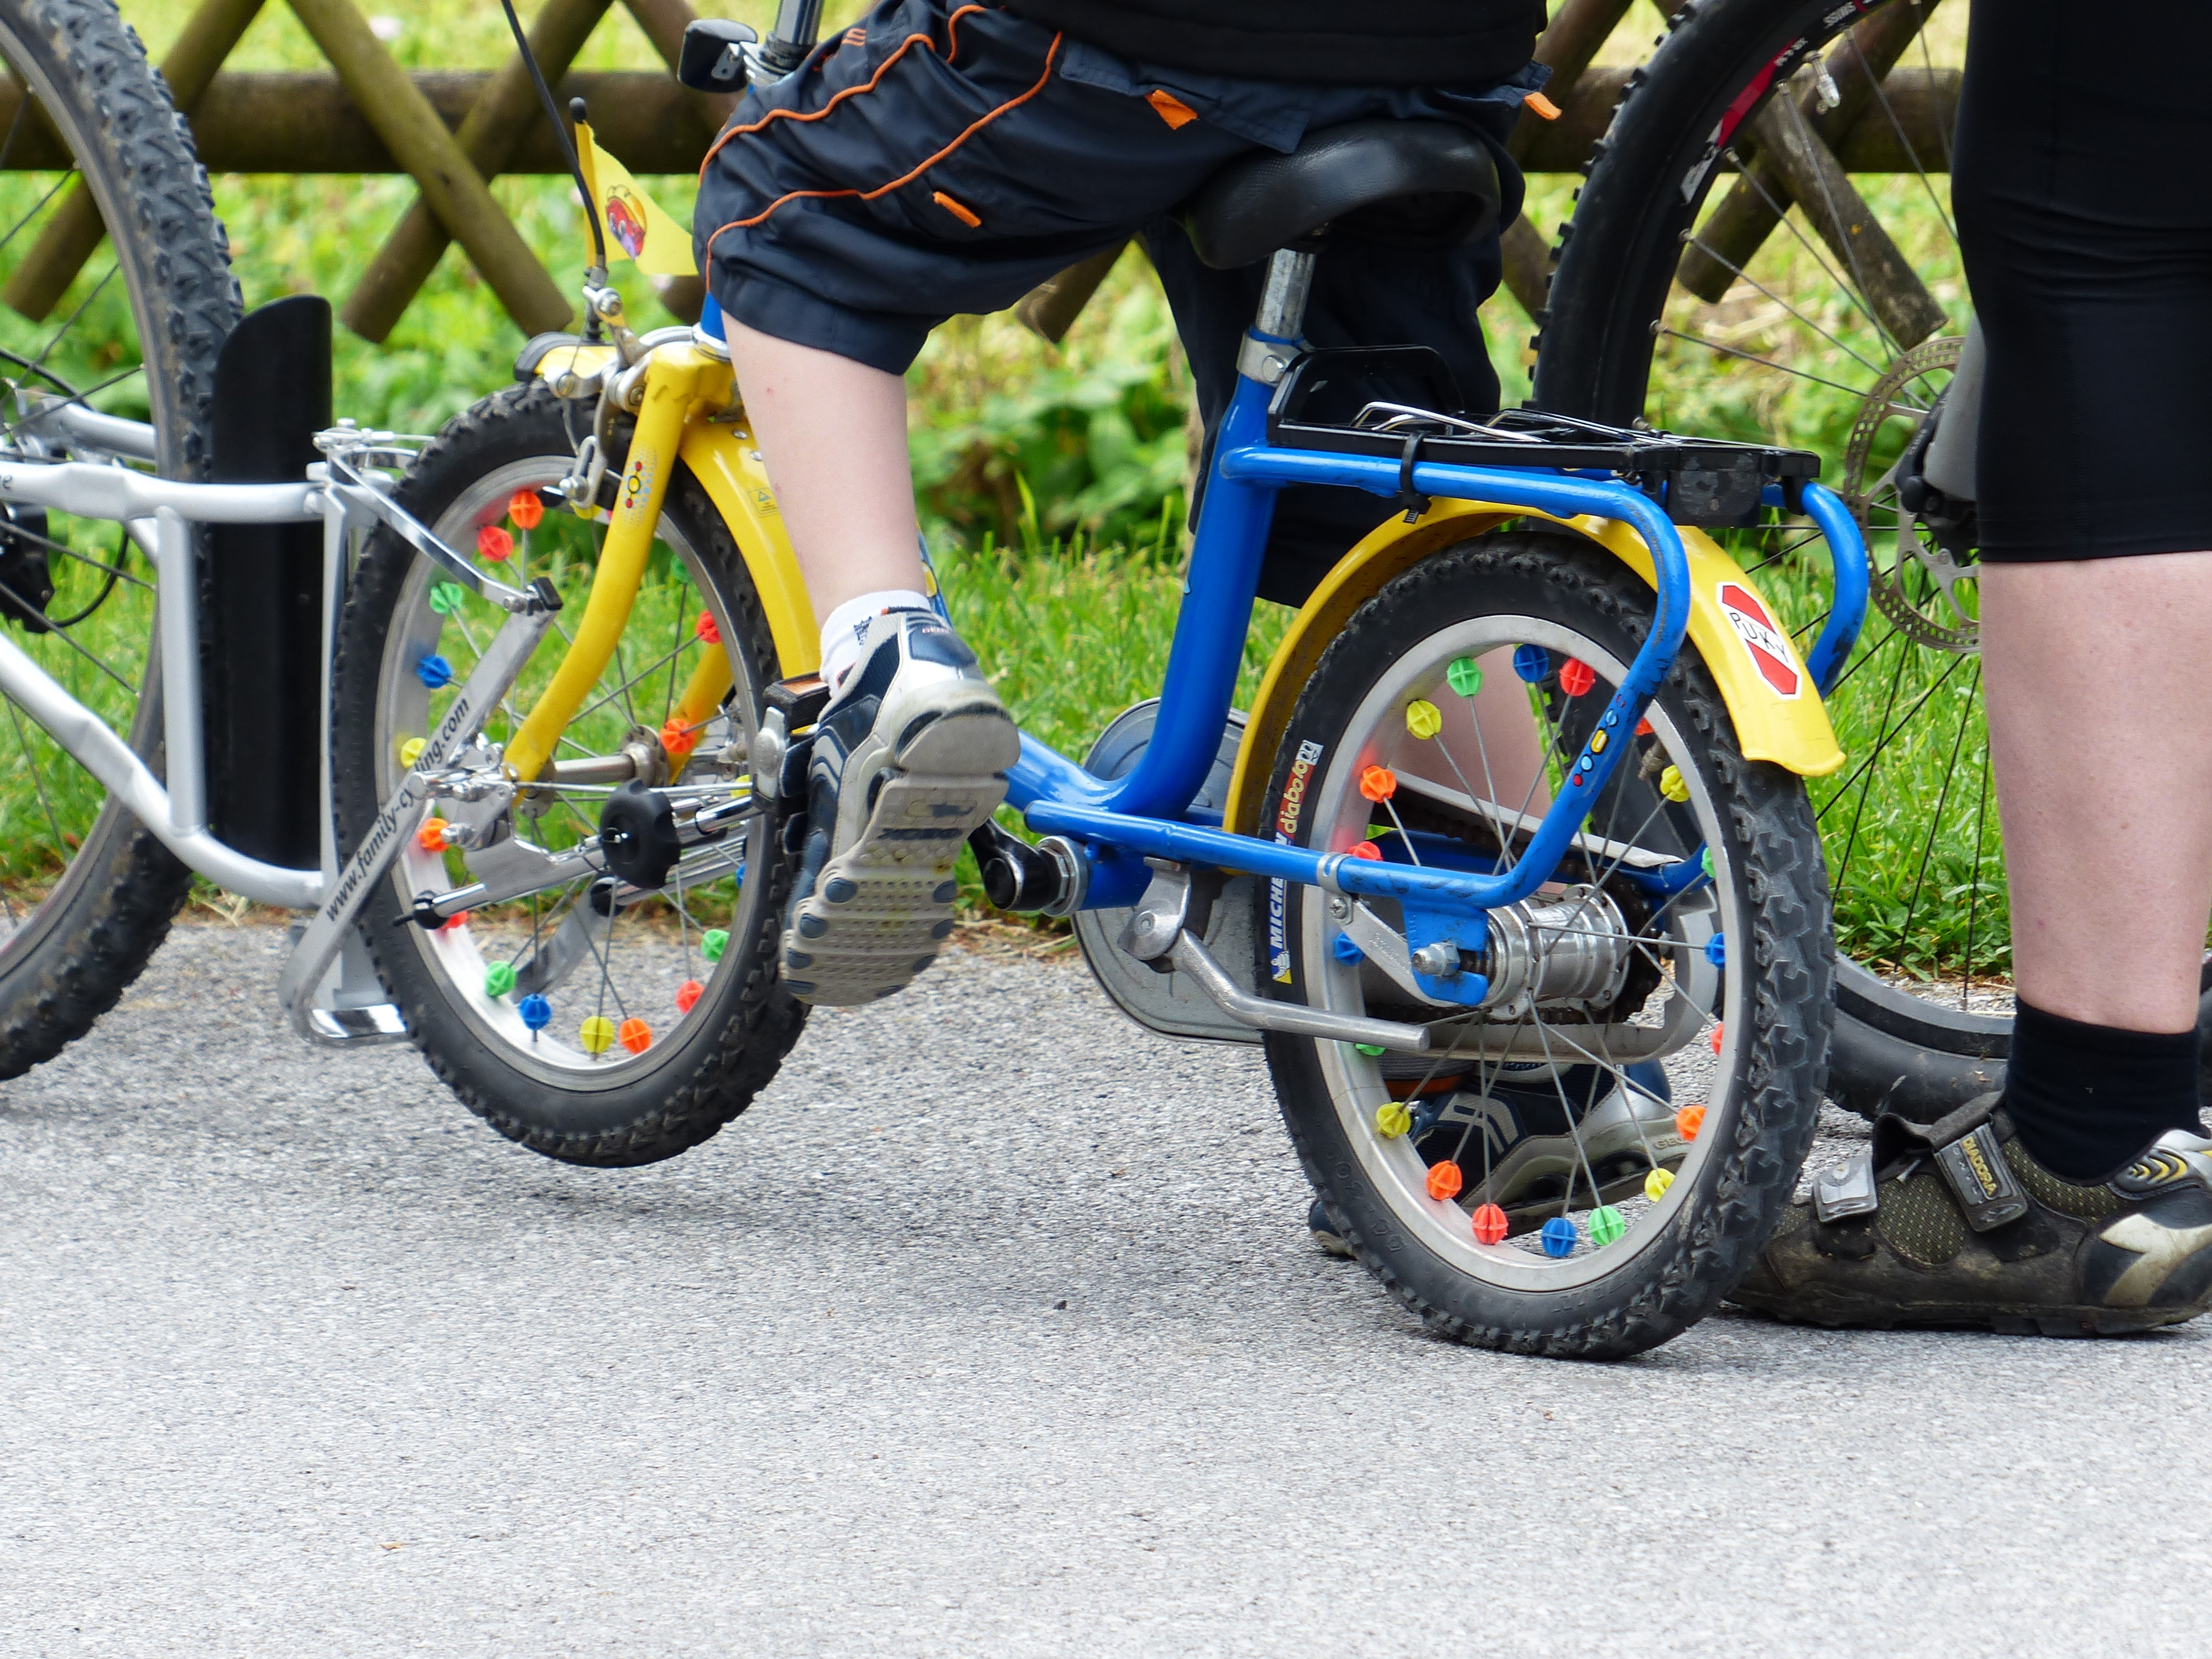 bike_childs_bike_tandem_coupling